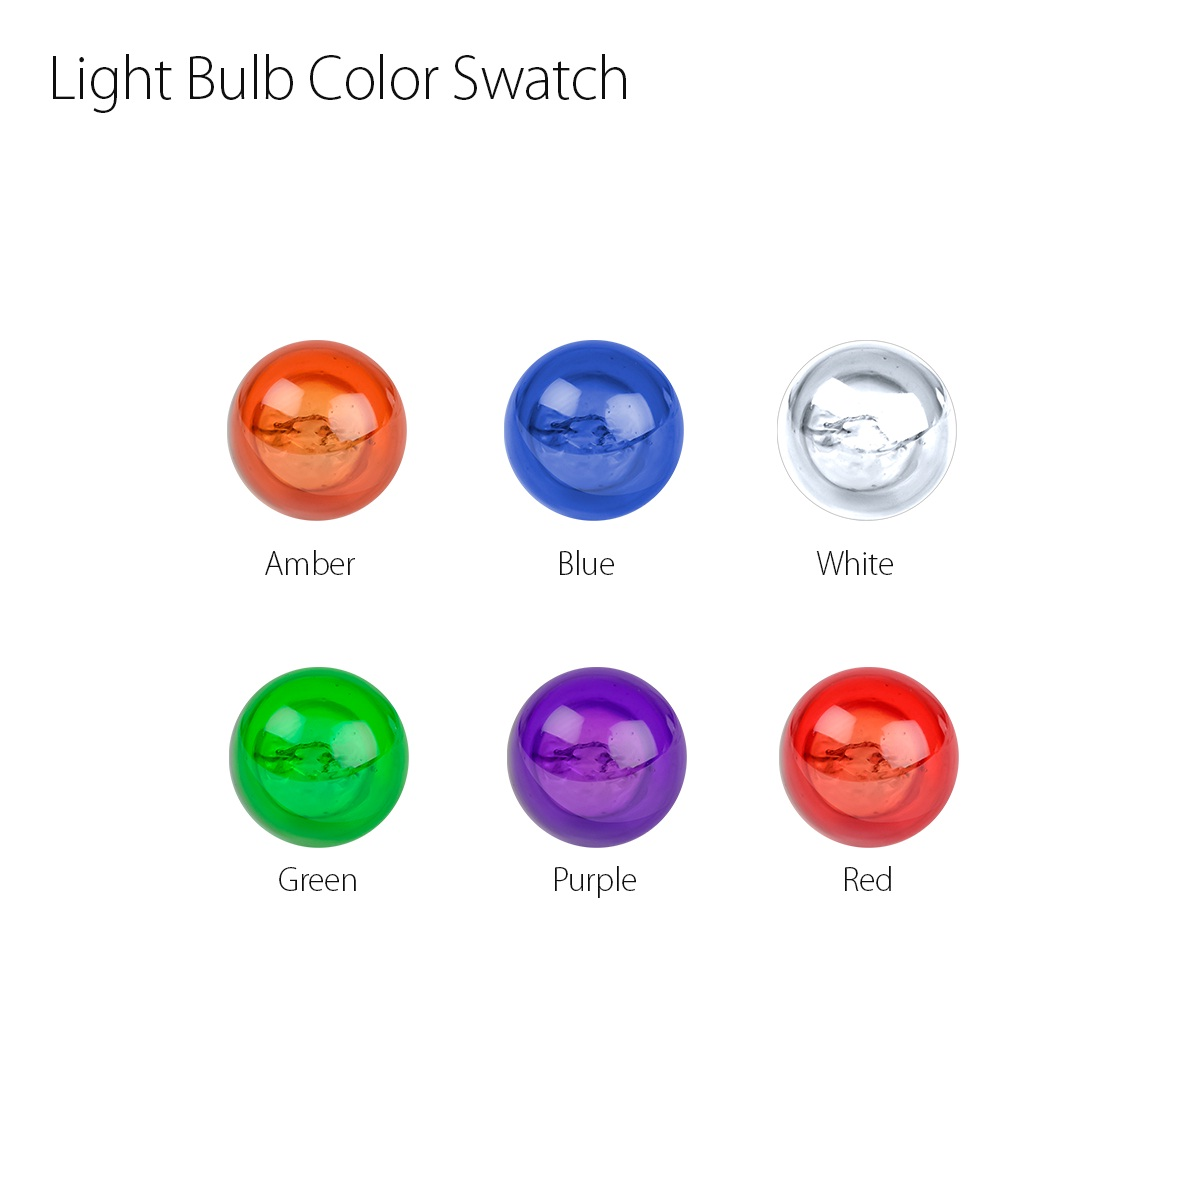 #3156/ #3157 Miniature Replacement Color Light Bulb Swatch